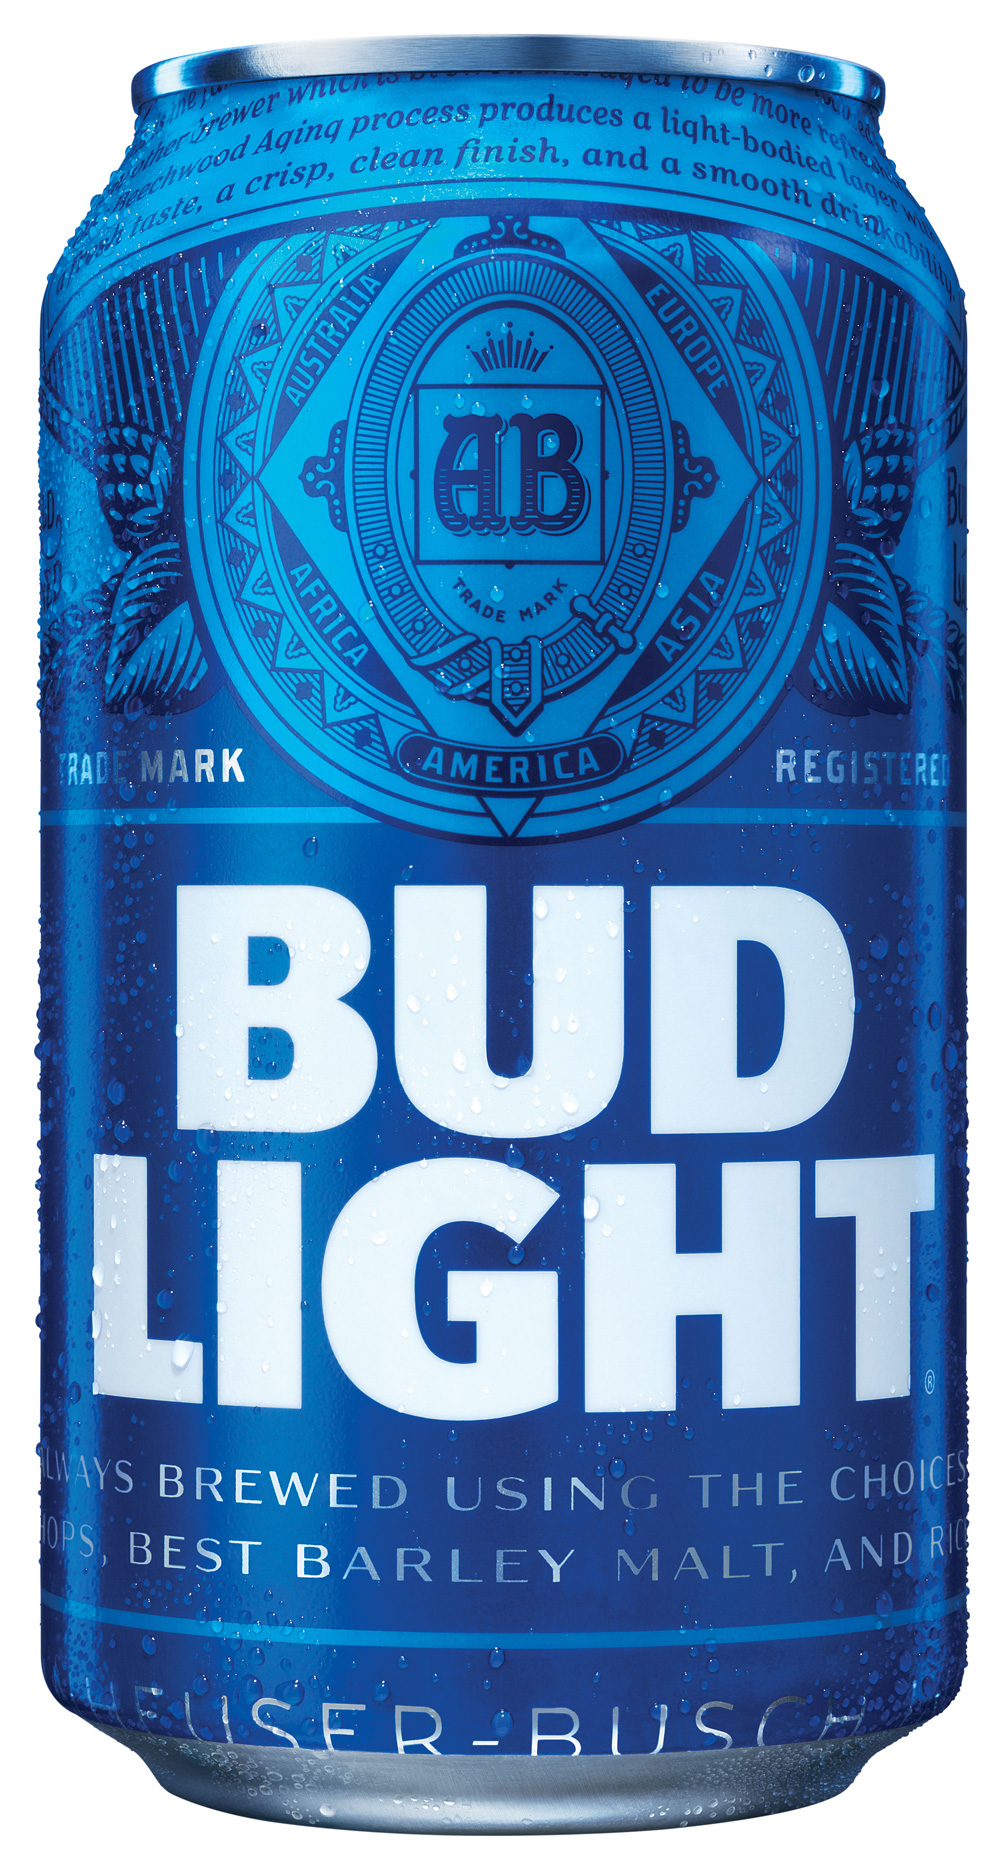 Brand New New Packaging For Bud Light By Jones Knowles Ritchie